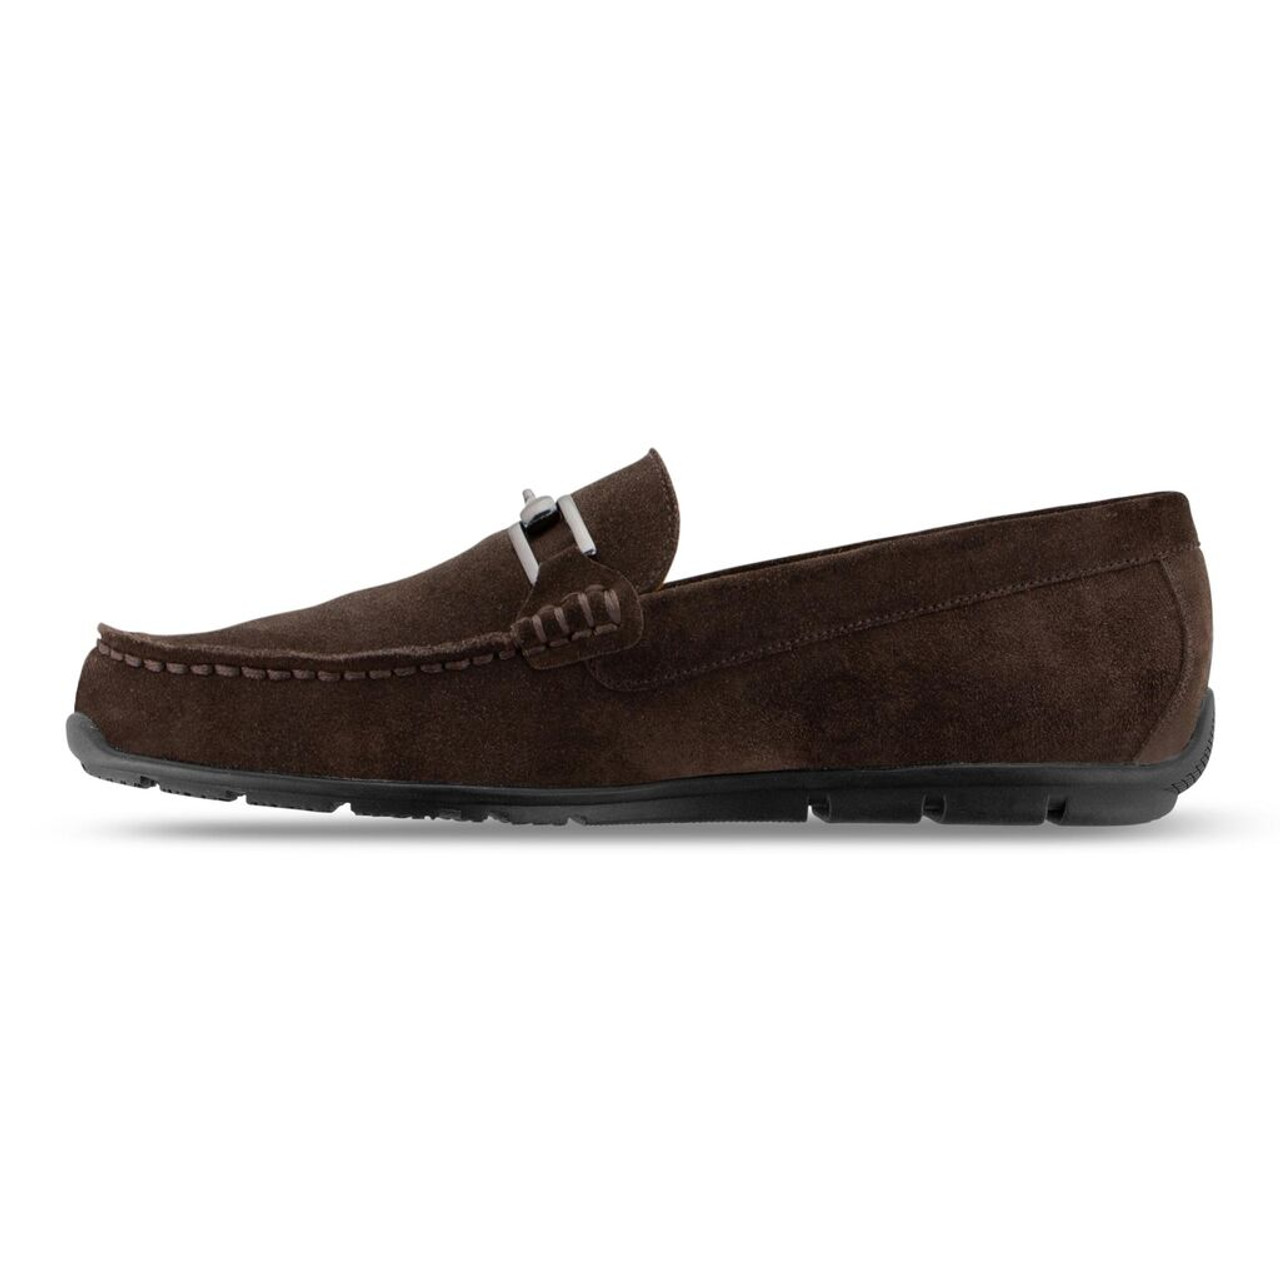 FootJoy Club Casuals Suede Loafers - Chocolate (79063)